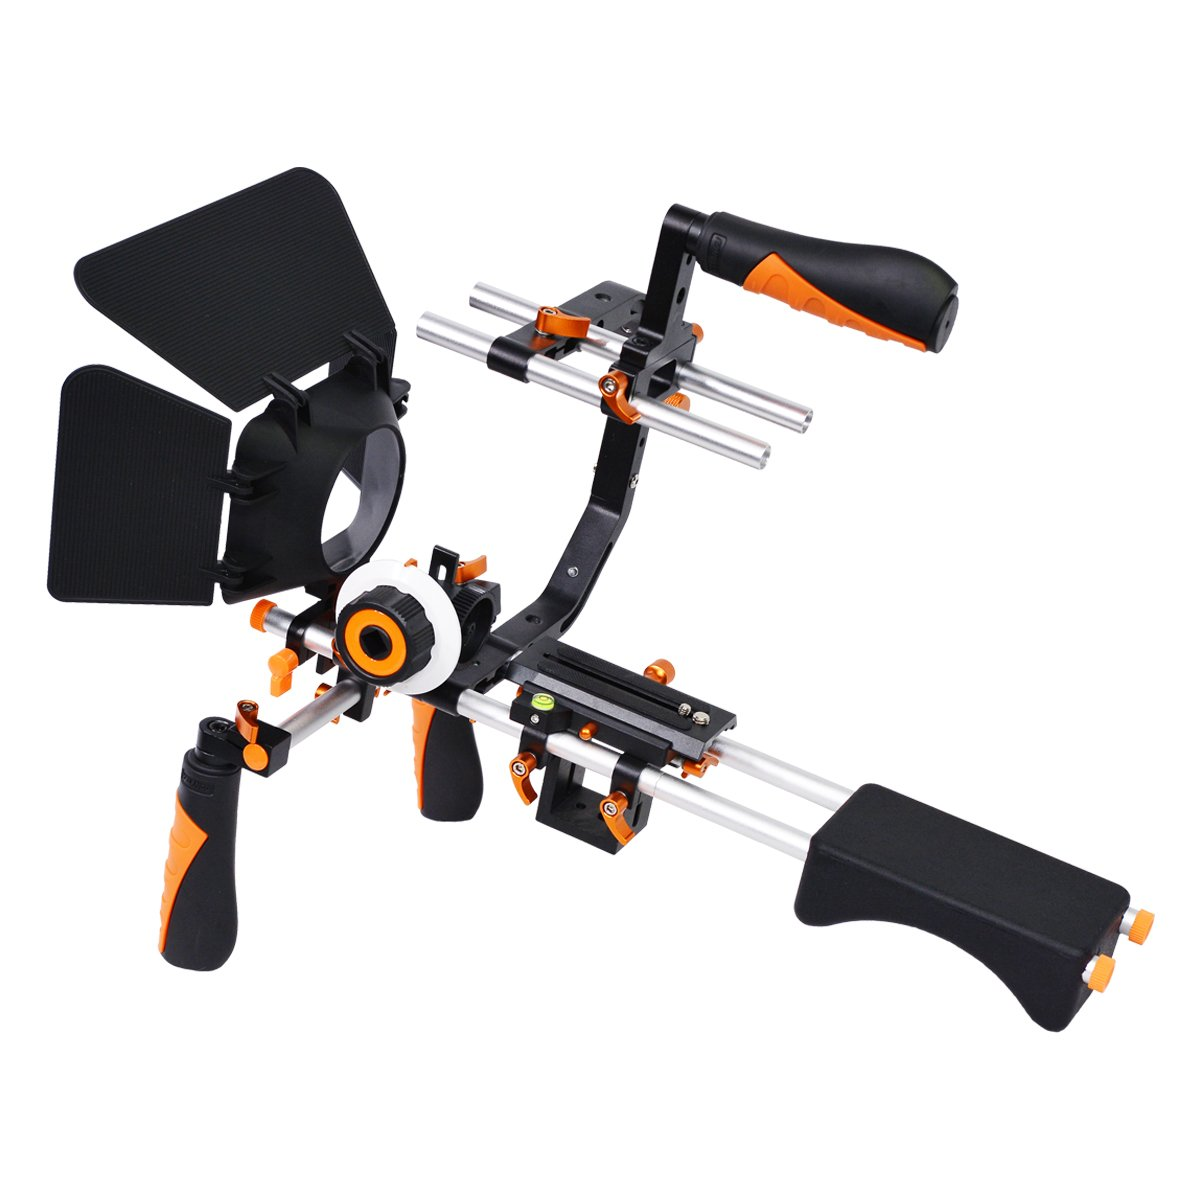 YELANGU Video Camera Shoulder Rig Support with Matte Box Follow Fcous for All DSLR Cameras and Camcorders (Orange)